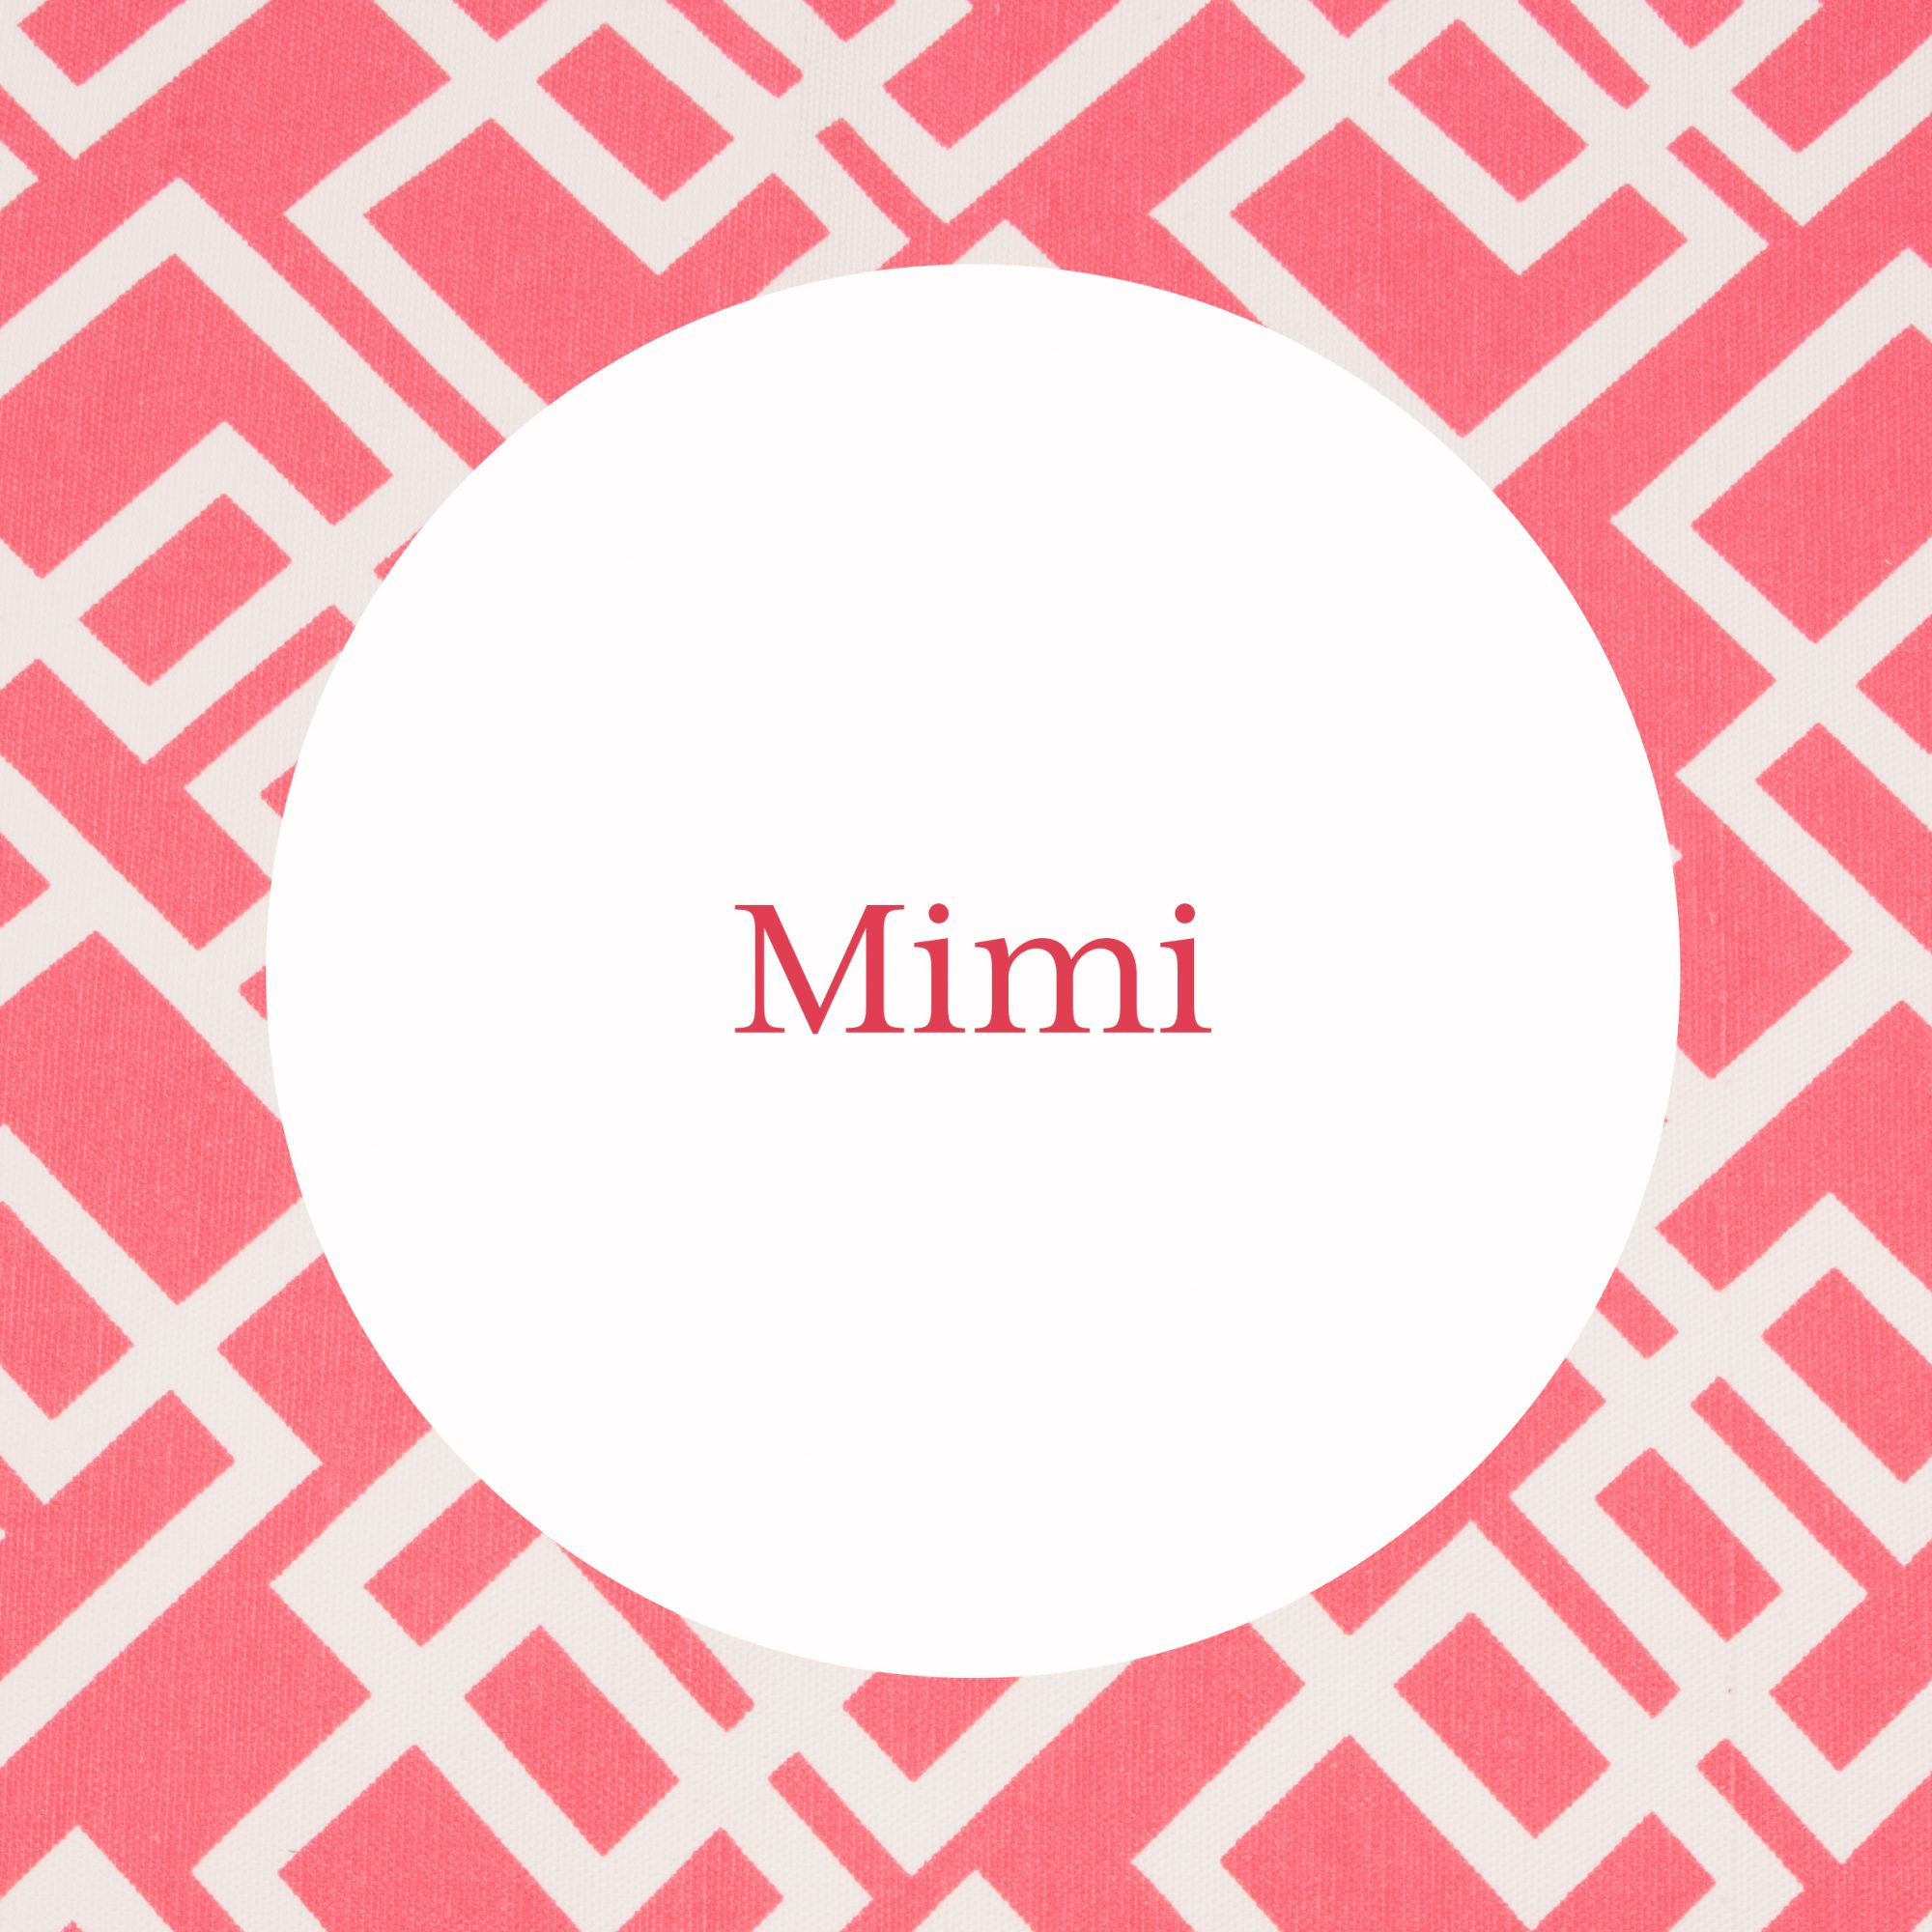 Mimi Grandmother Name Image